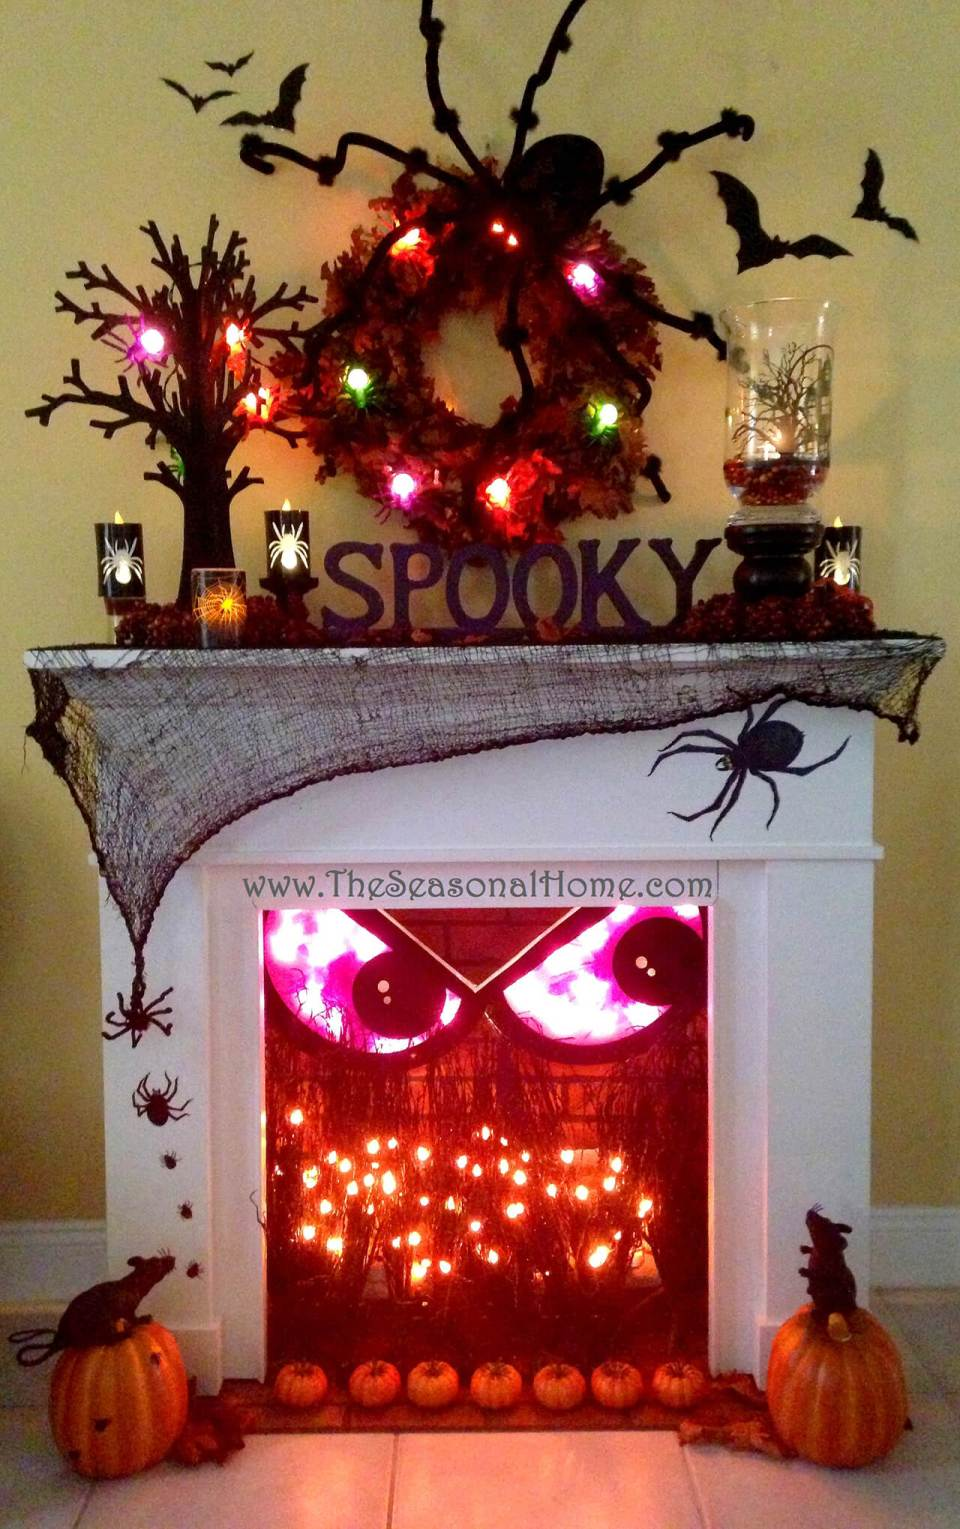 Spooky Fireplace Crackles with Fun | DIY Indoor Halloween Decorating Ideas